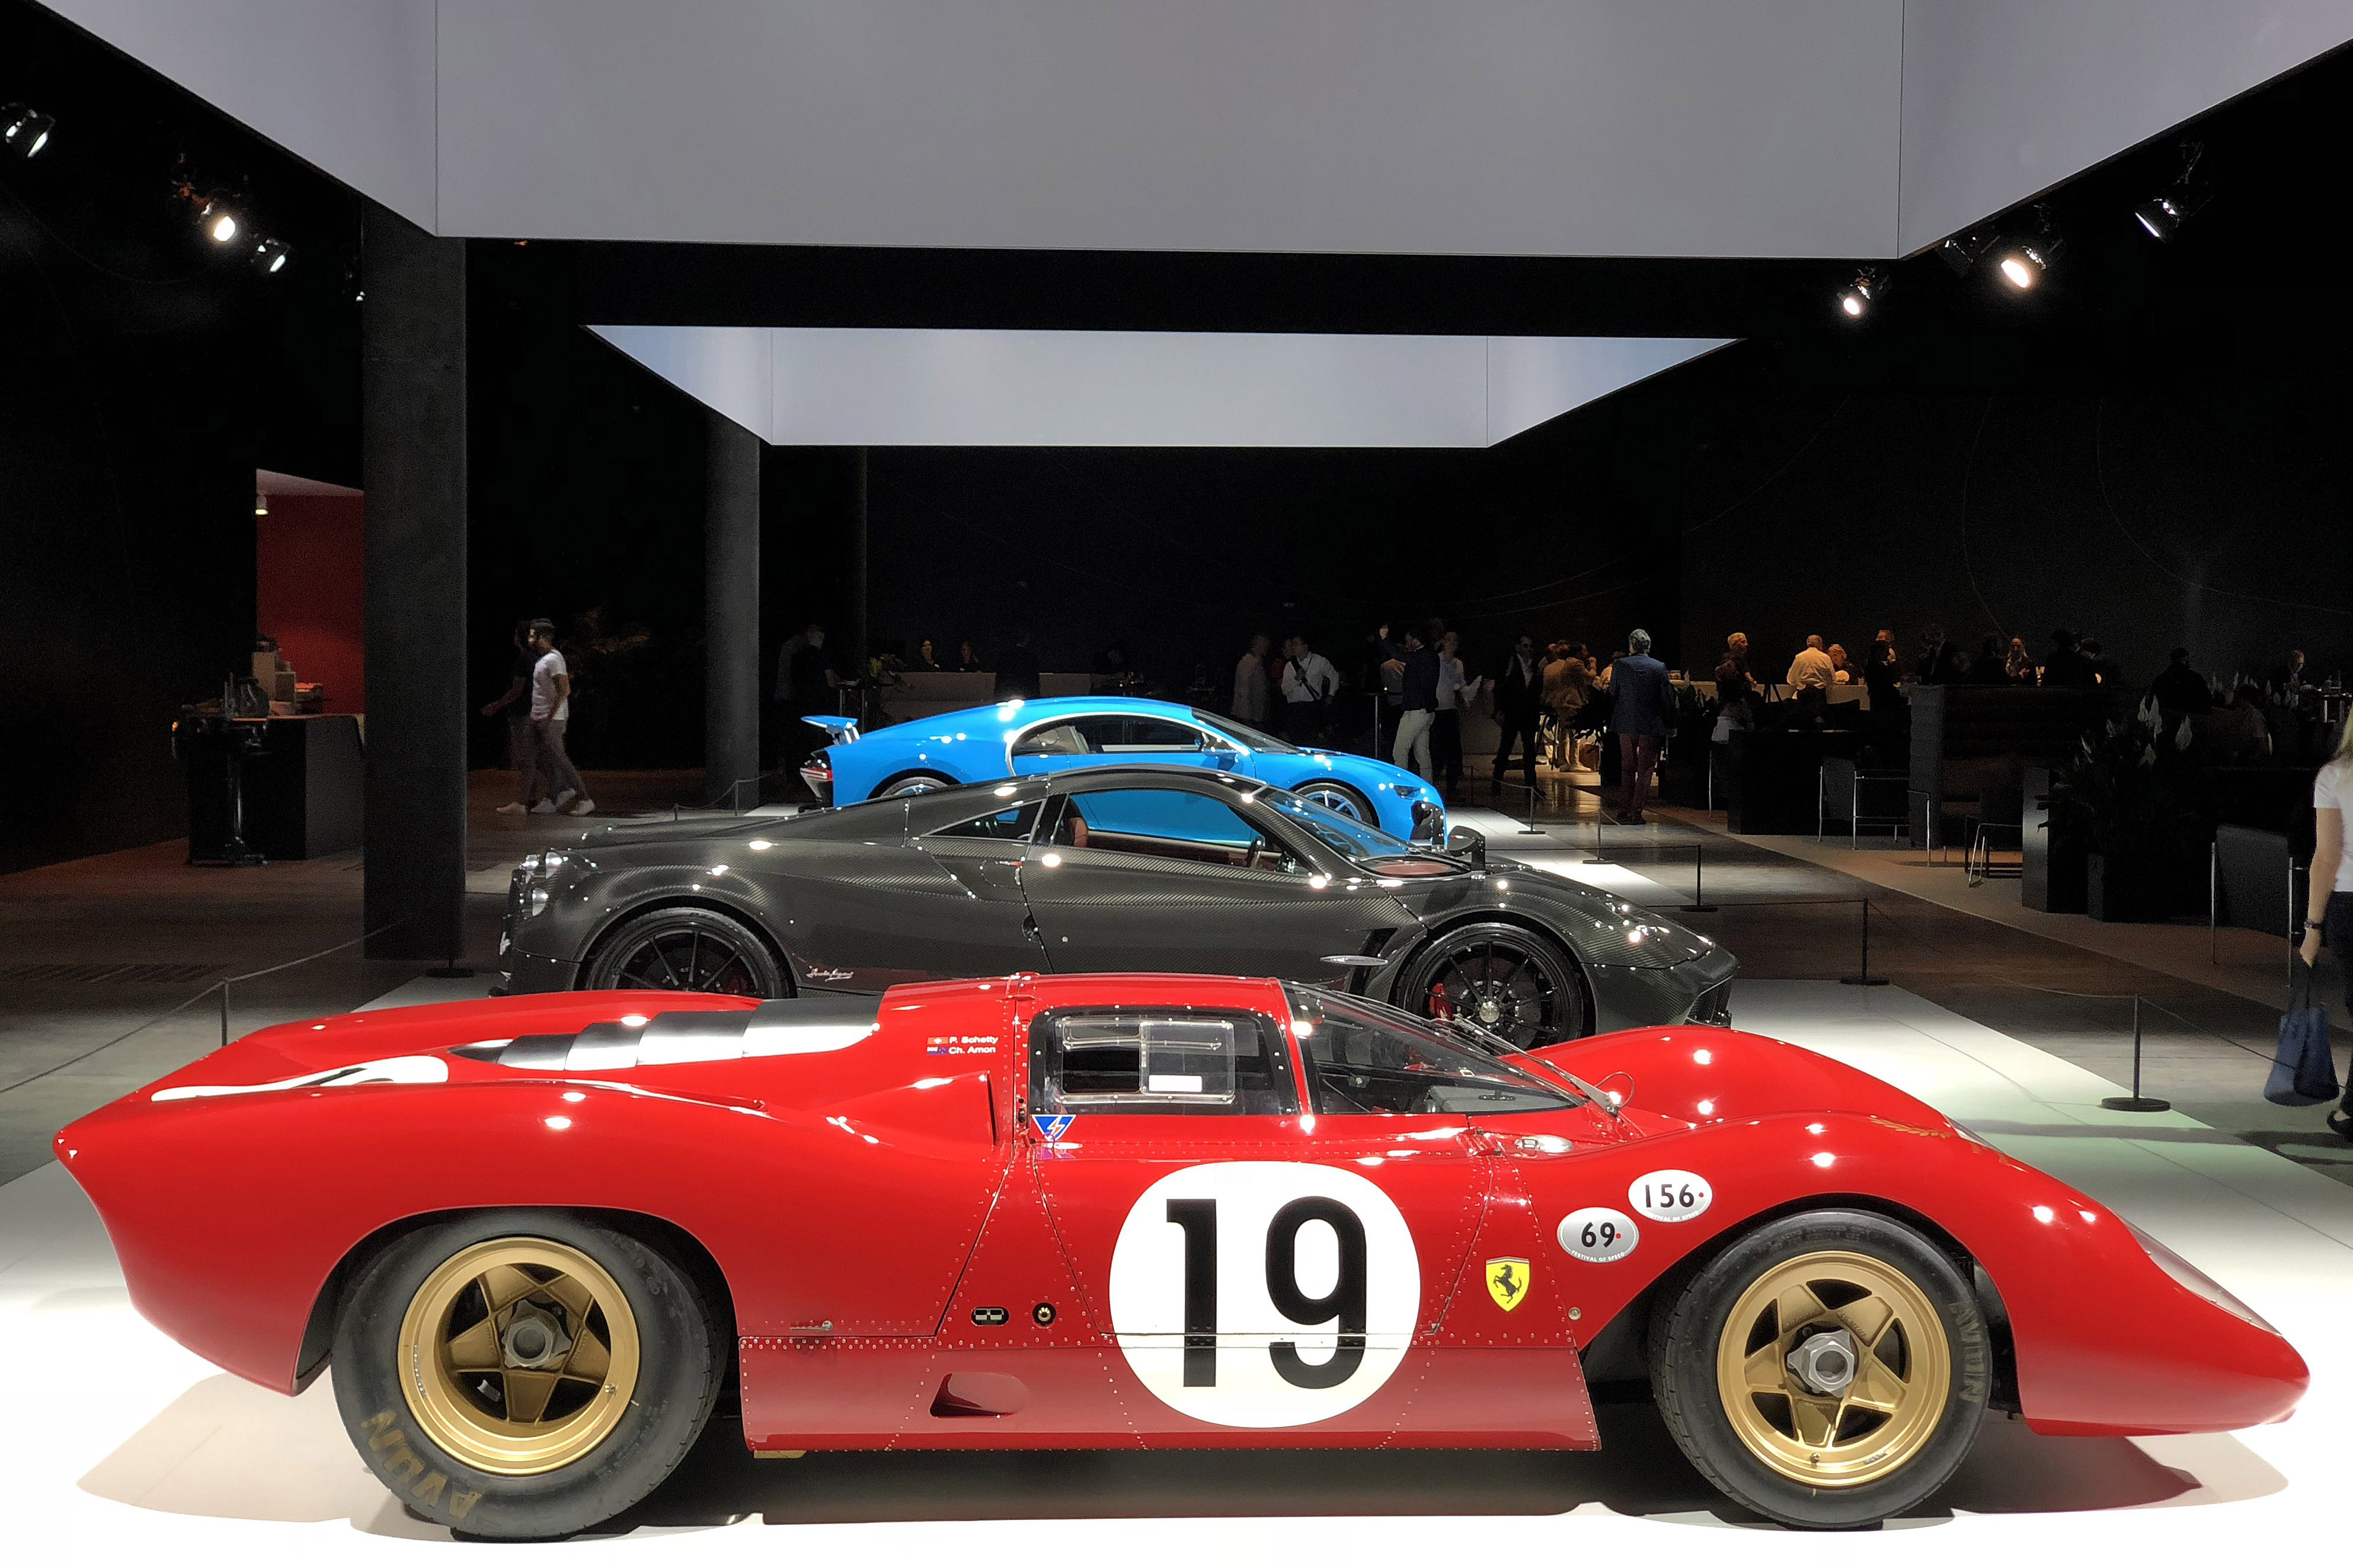 Grand Basel Best Cars From The Coolest Car Show You Didnt Know - Ferrari car show